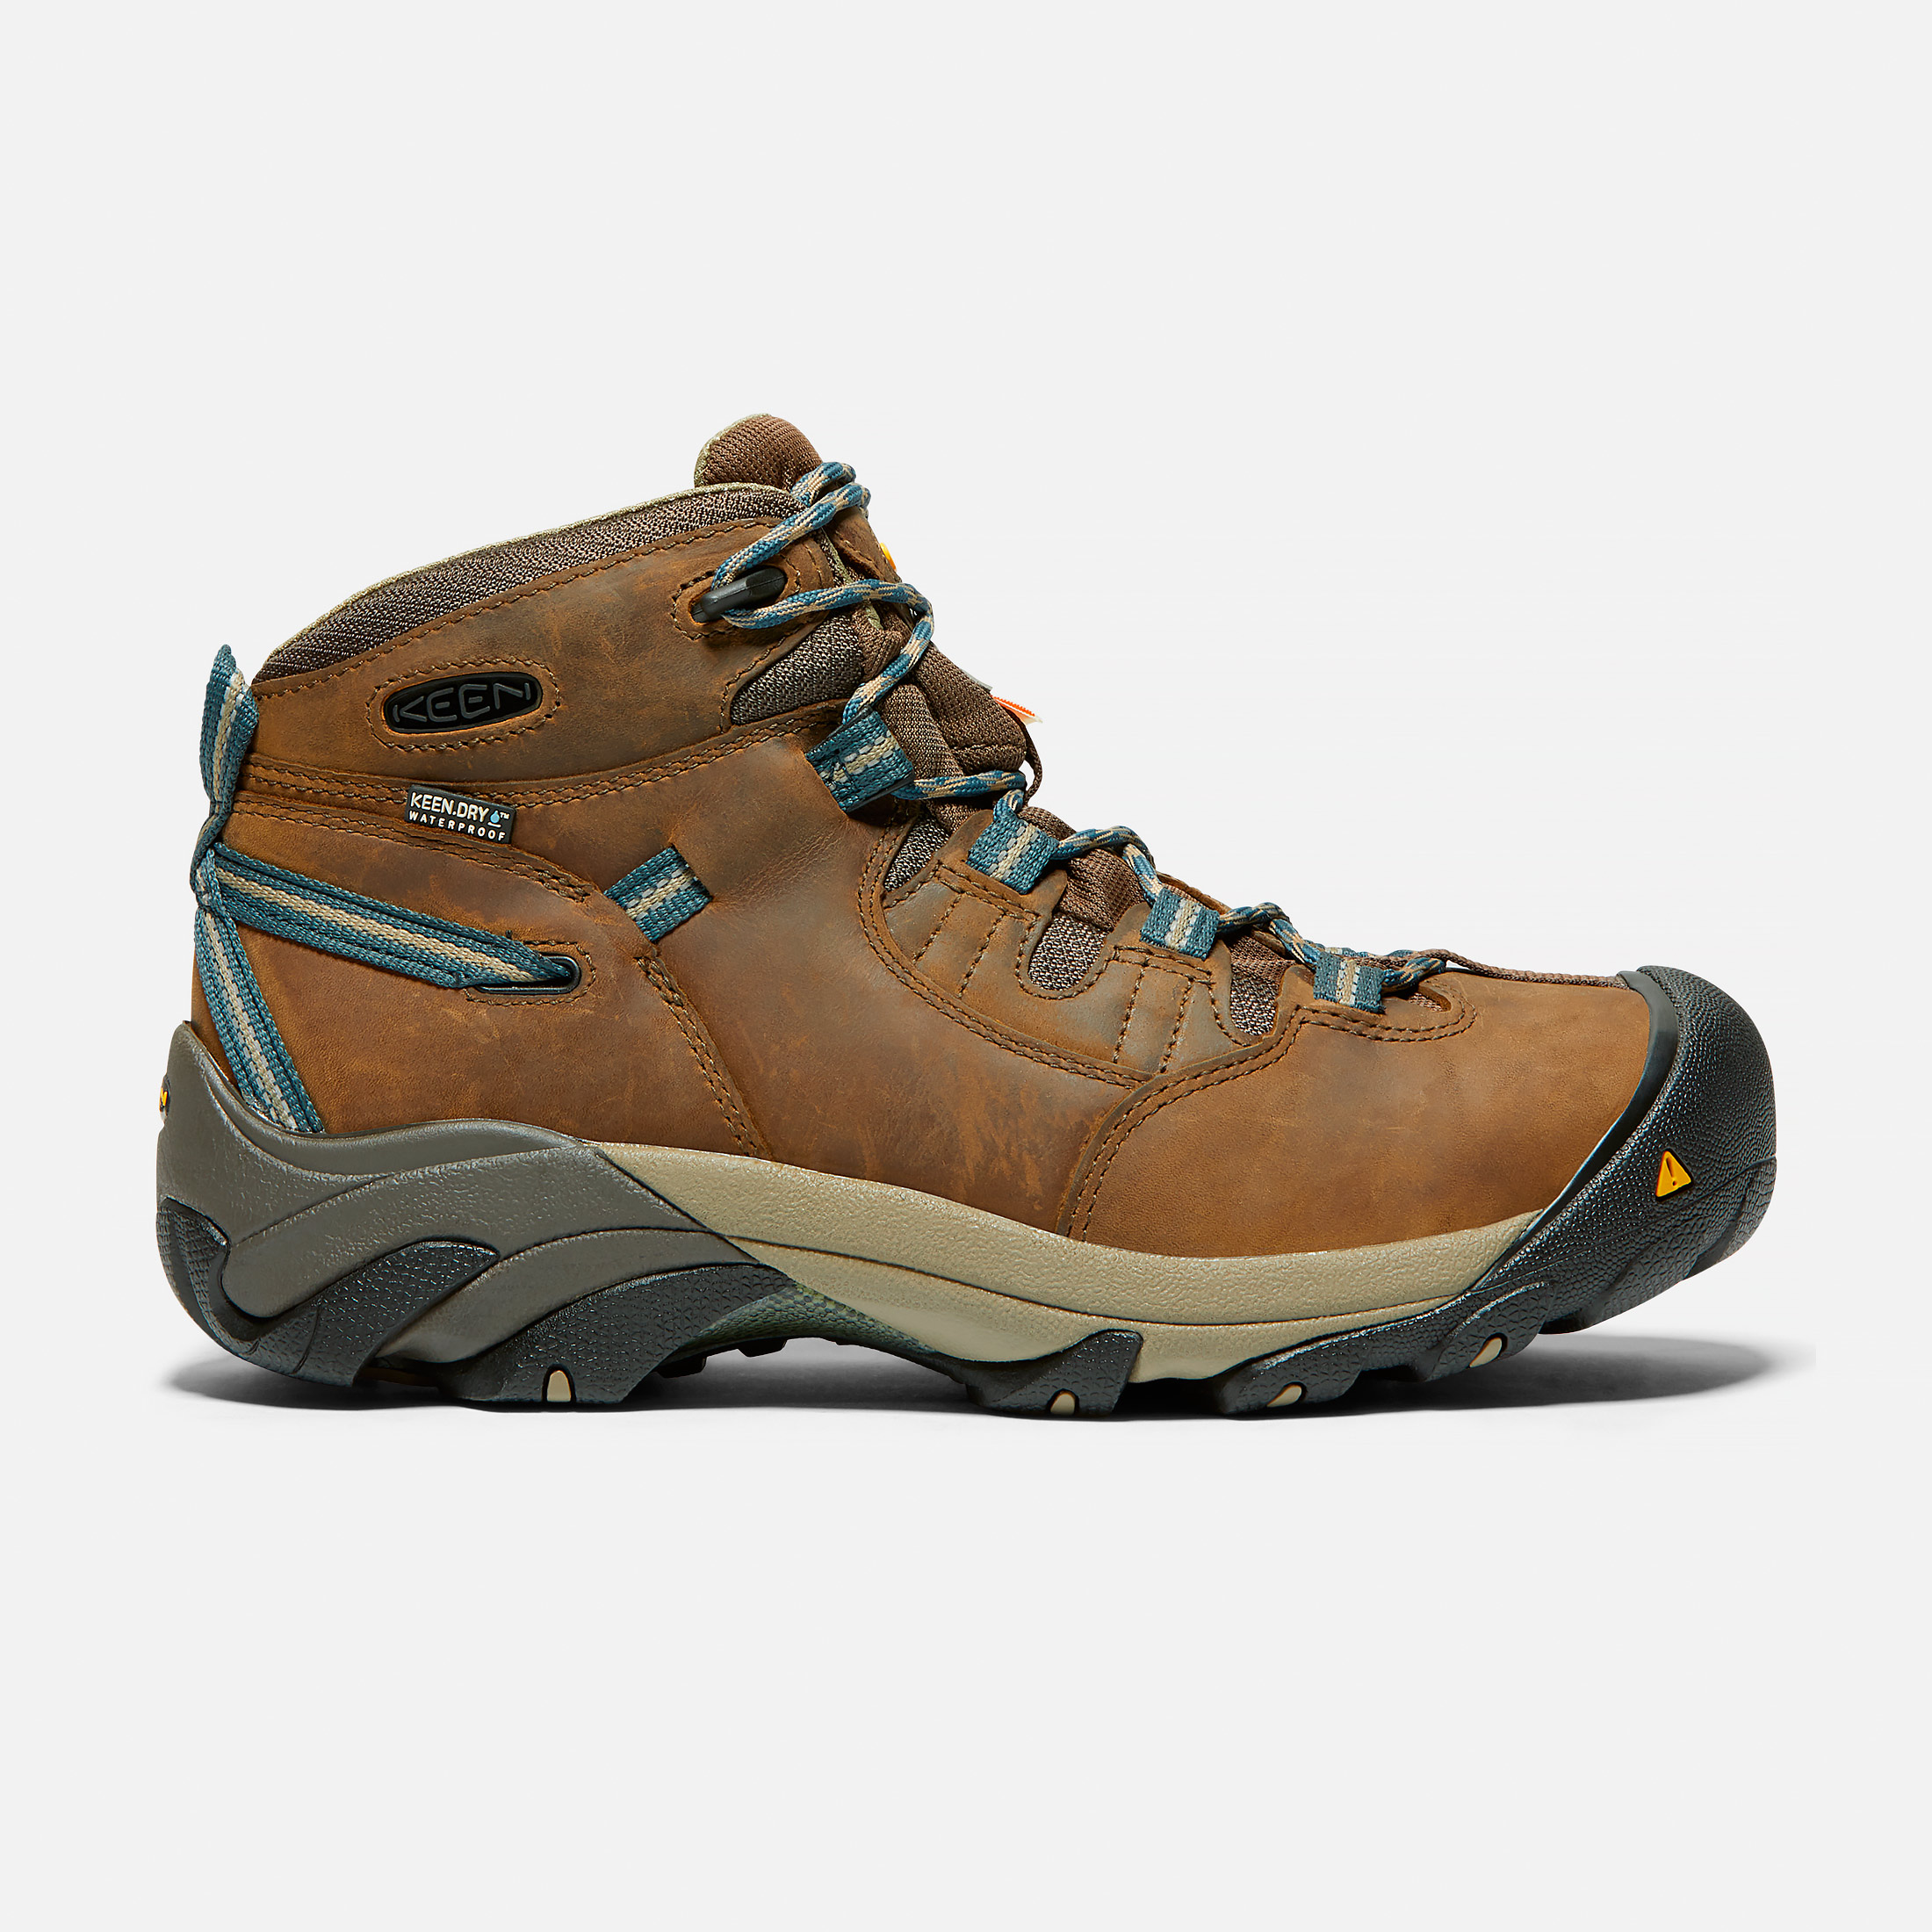 outfitter comforter boot sport boots walking m for front foo western comfortable